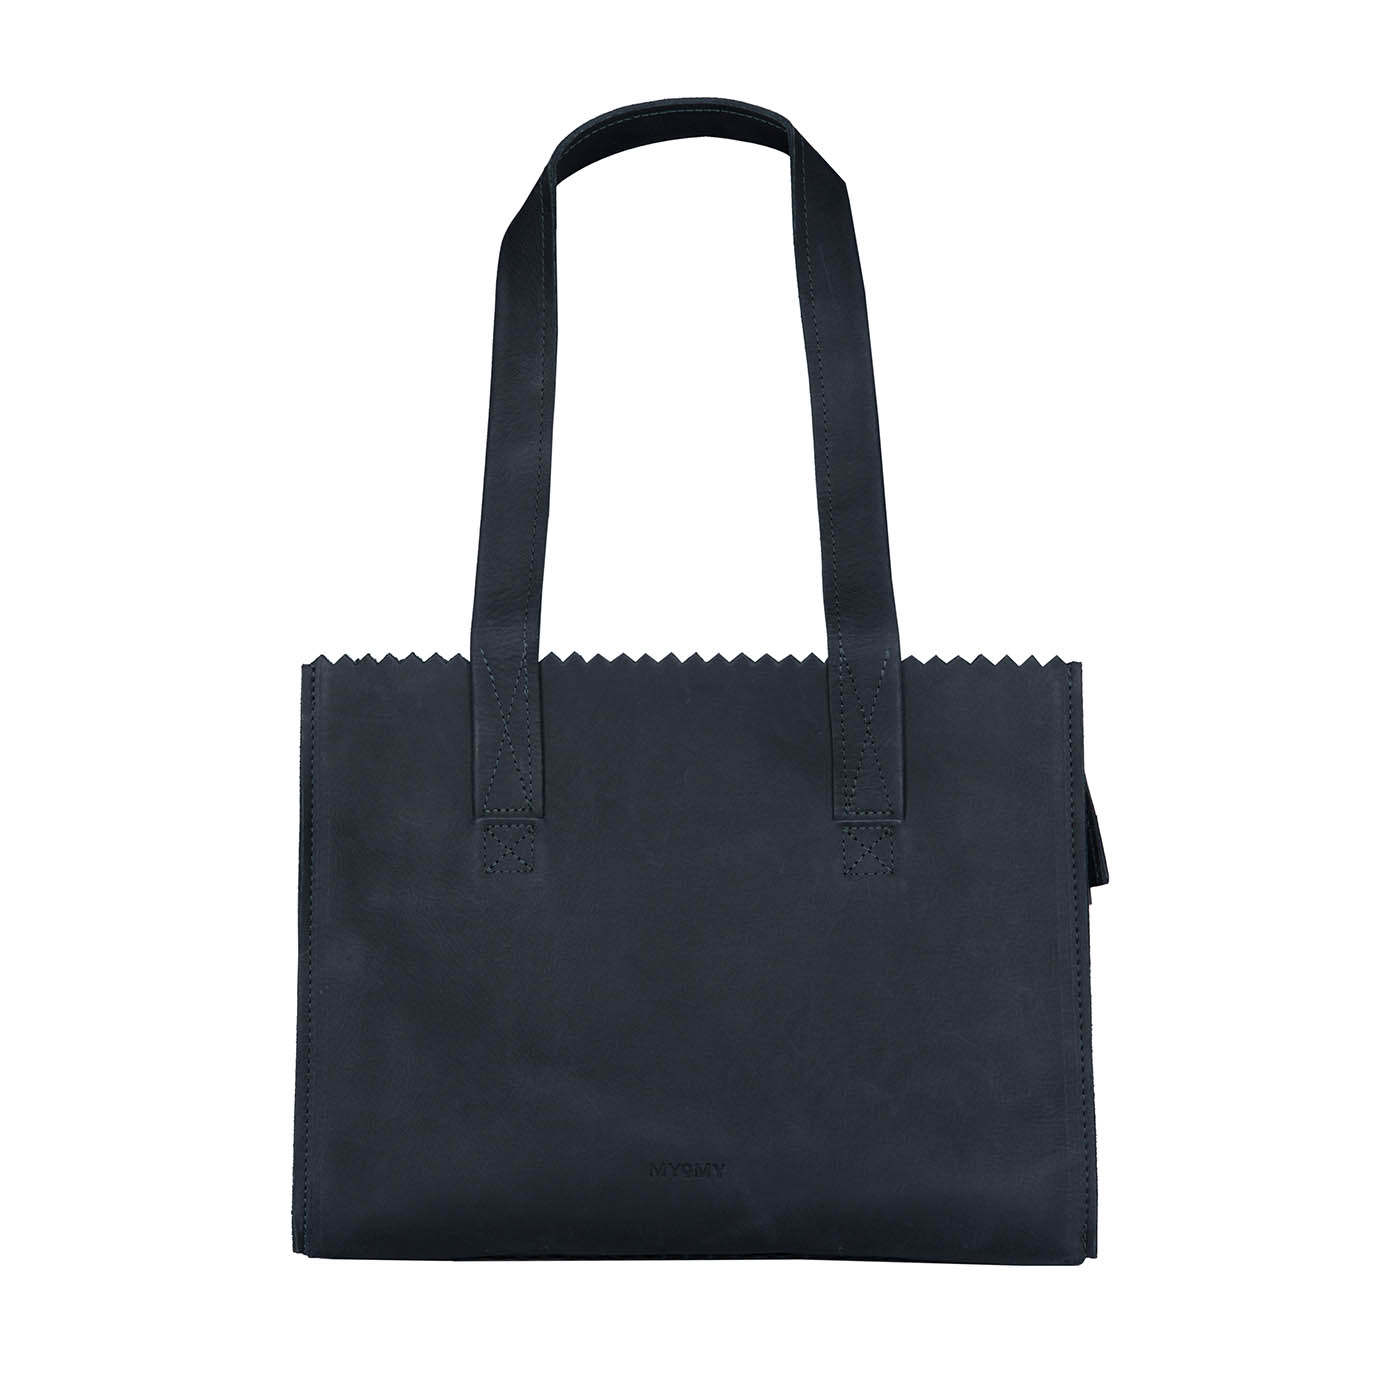 MY PAPER BAG Handbag – hunter off-black